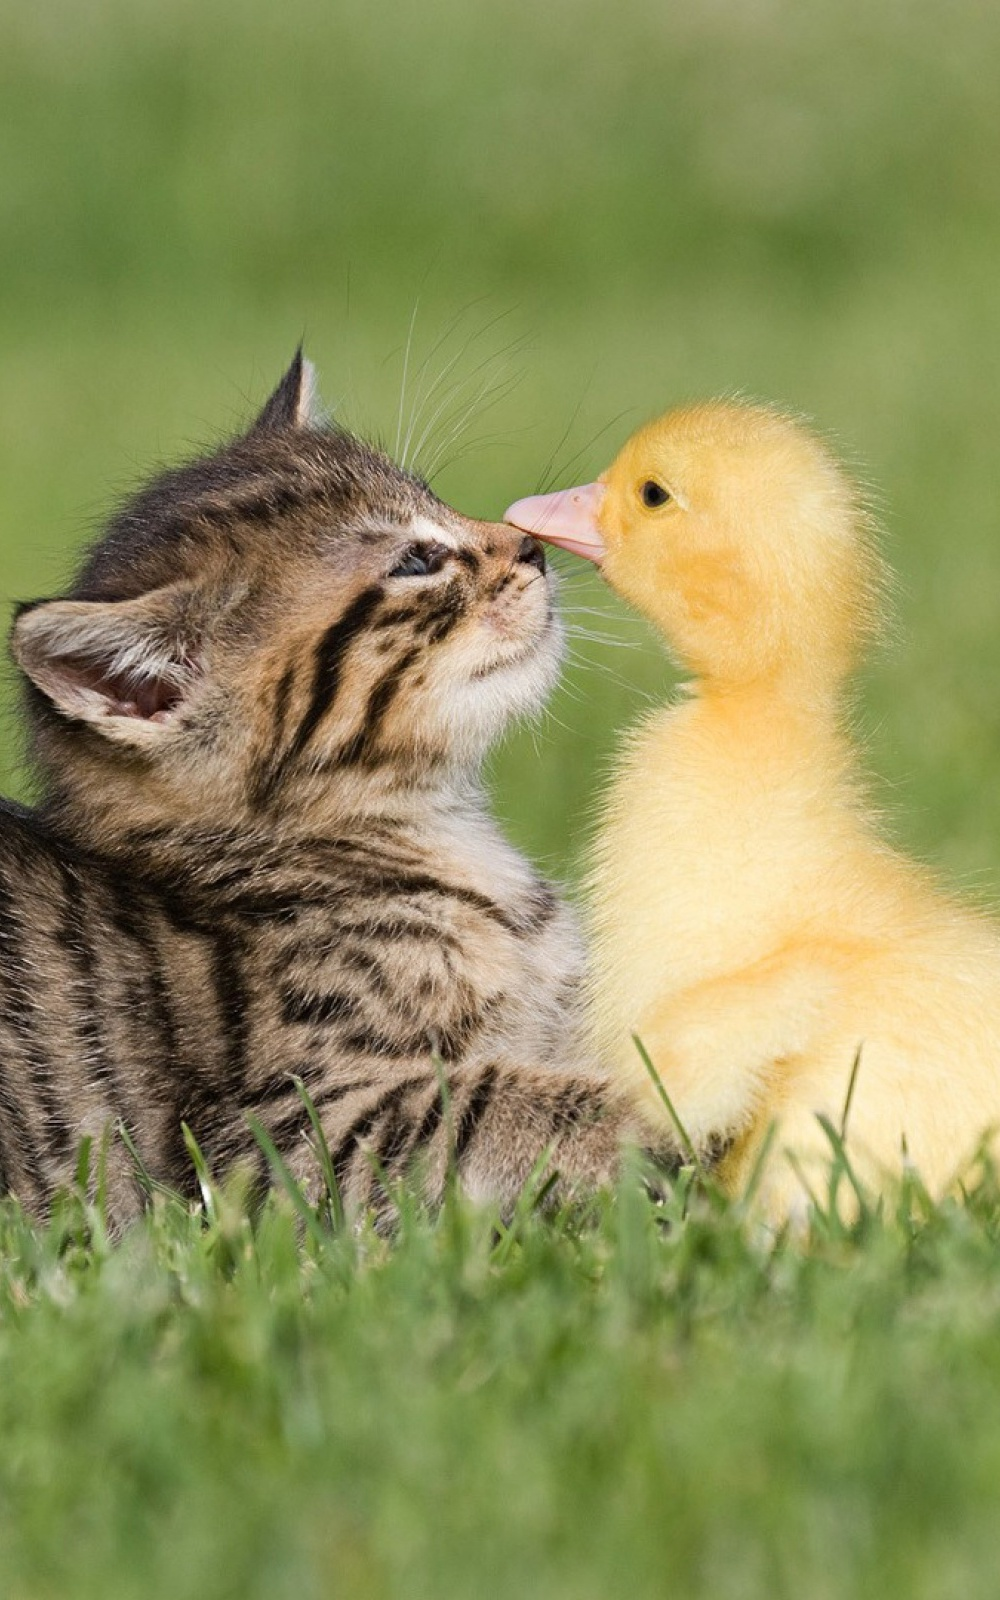 Baby Kitten And Duck Android Wallpaper download 1000x1600